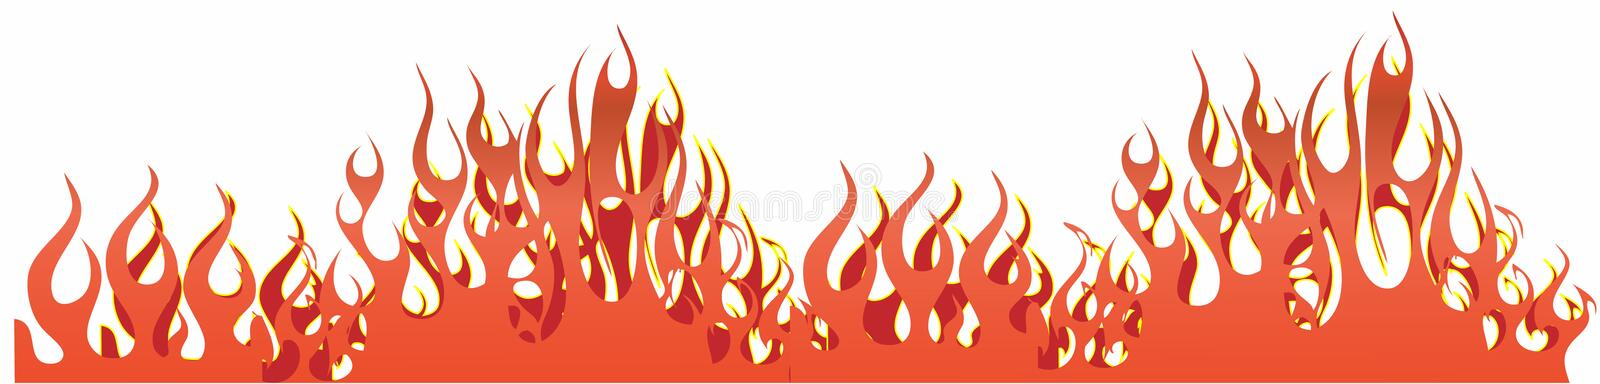 Flames stock illustration